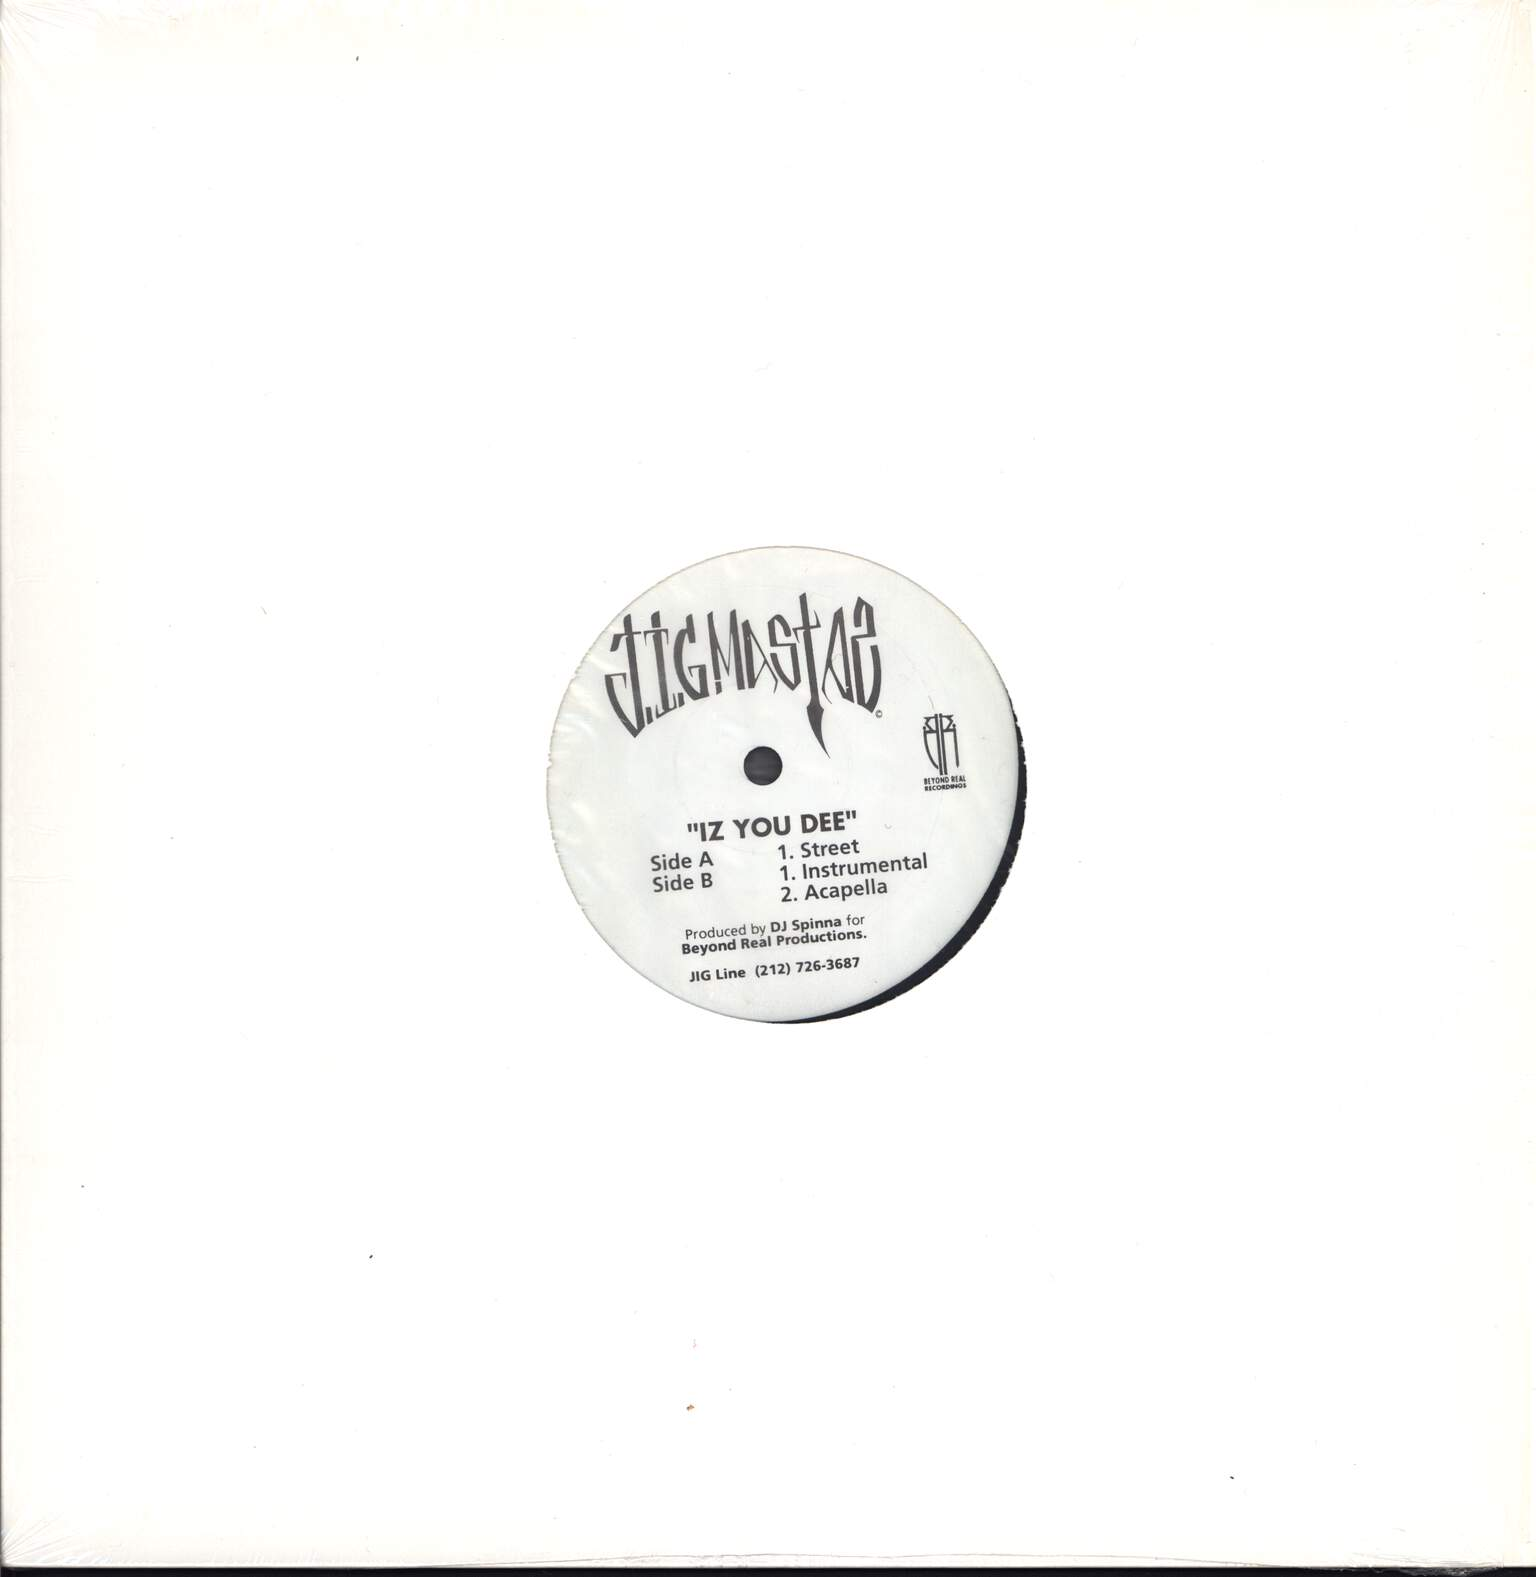 "Jigmastas: Iz You Dee, 12"" Maxi Single (Vinyl)"